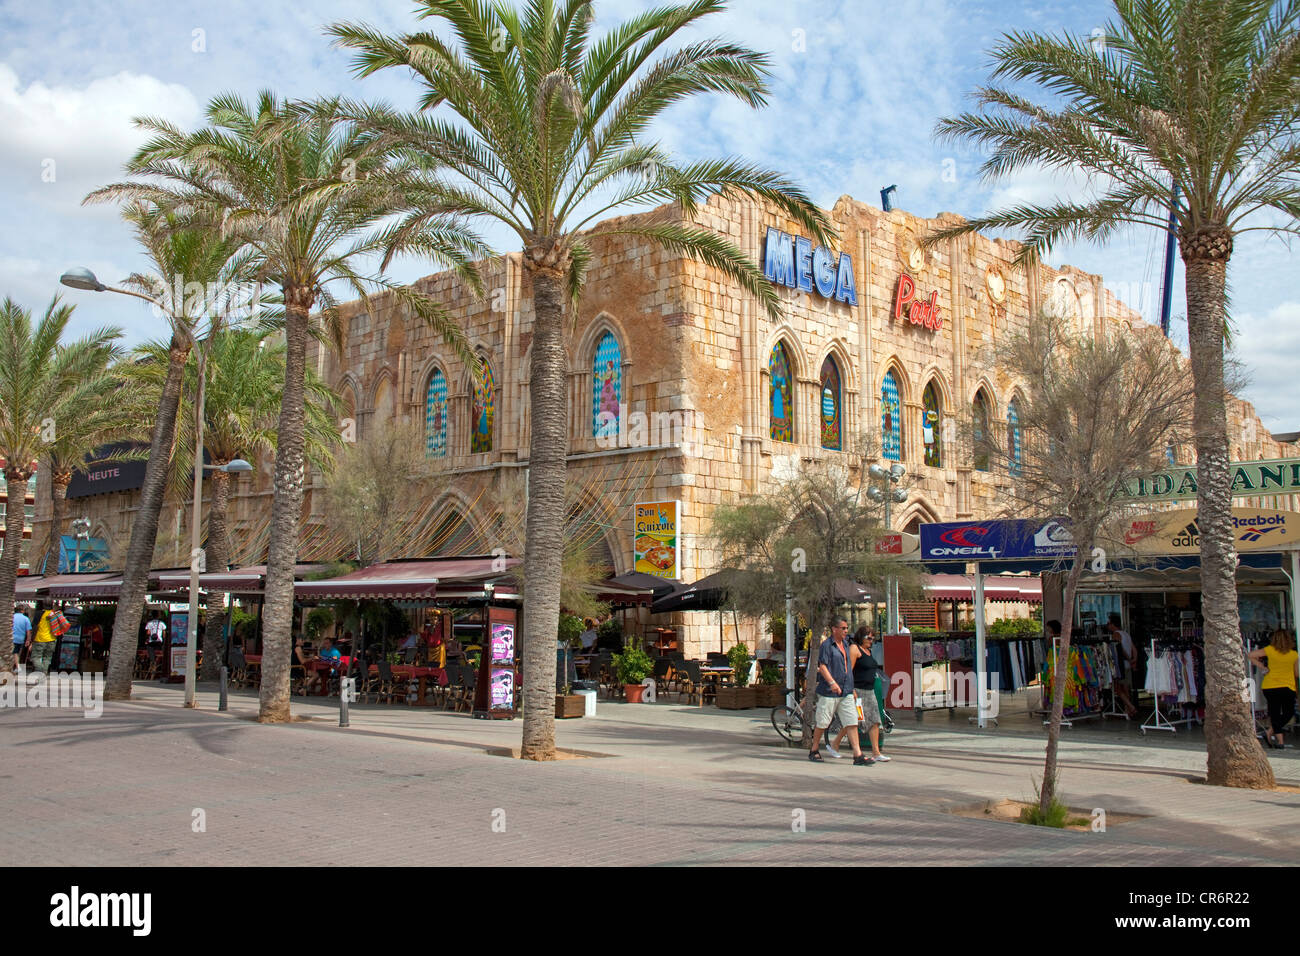 Bierkaiser, popular pub at Ballermann, tourist centre, Playa de Palma, El Arenal, Majorca, Balearic Islands, Spain, - Stock Image